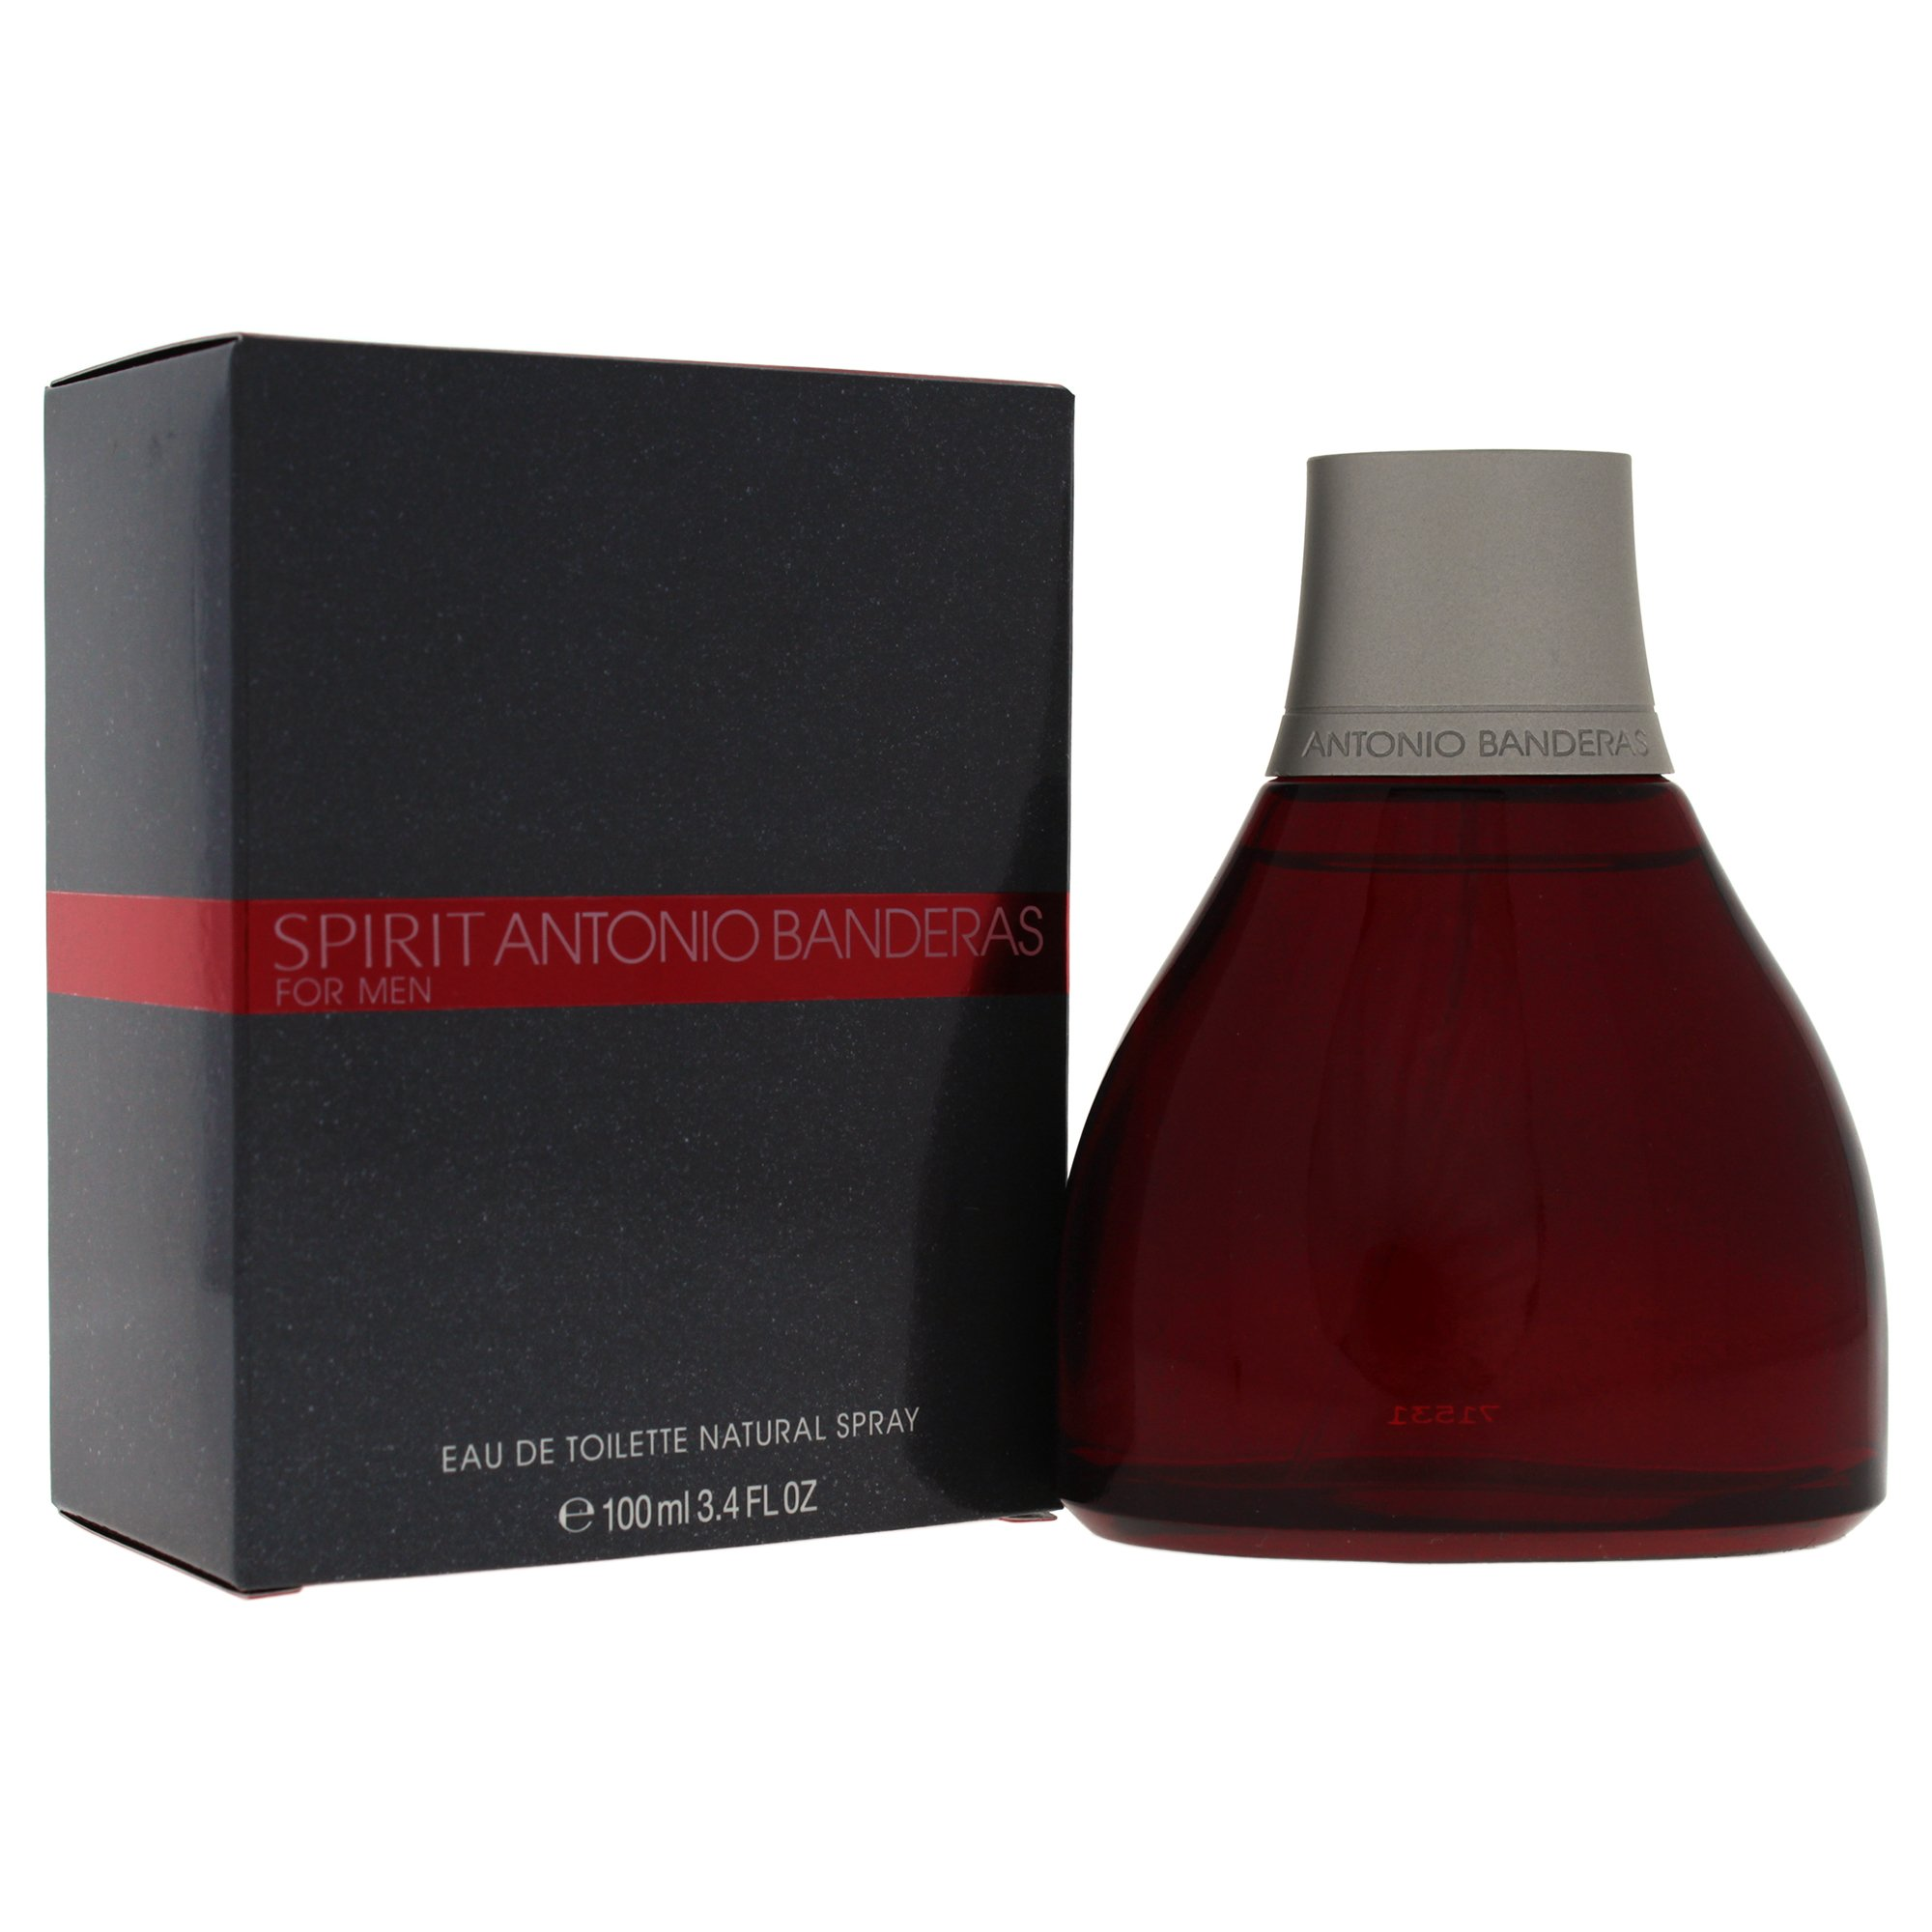 Amazon.com : Spirit By Antonio Banderas For Men. Eau De Toilette Spray 3.4 oz : Anotonio Banderas Spirit : Beauty